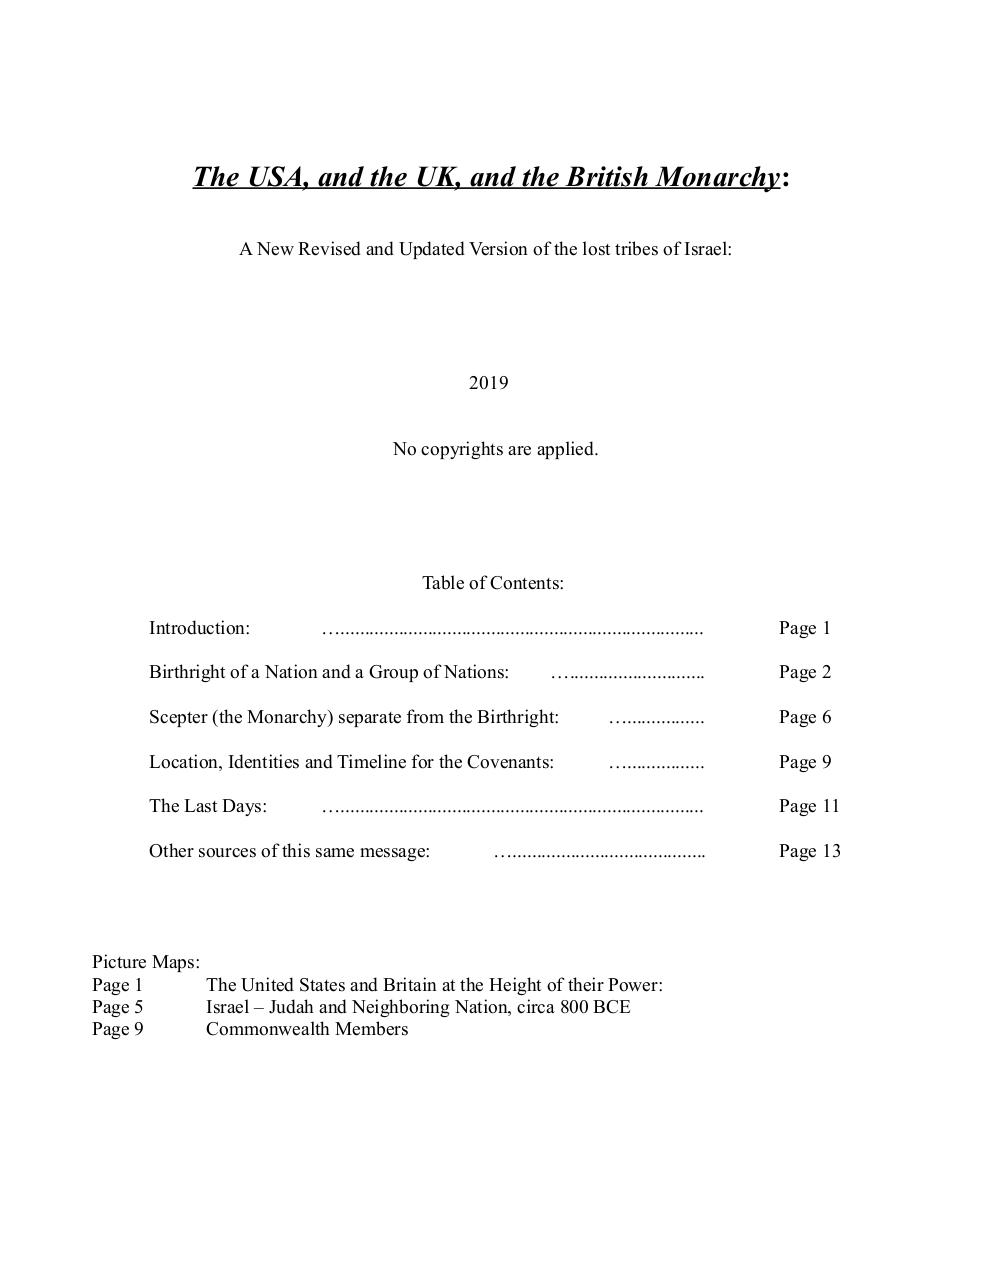 US & B Monarchy Proof by James Cusick - PDF Archive